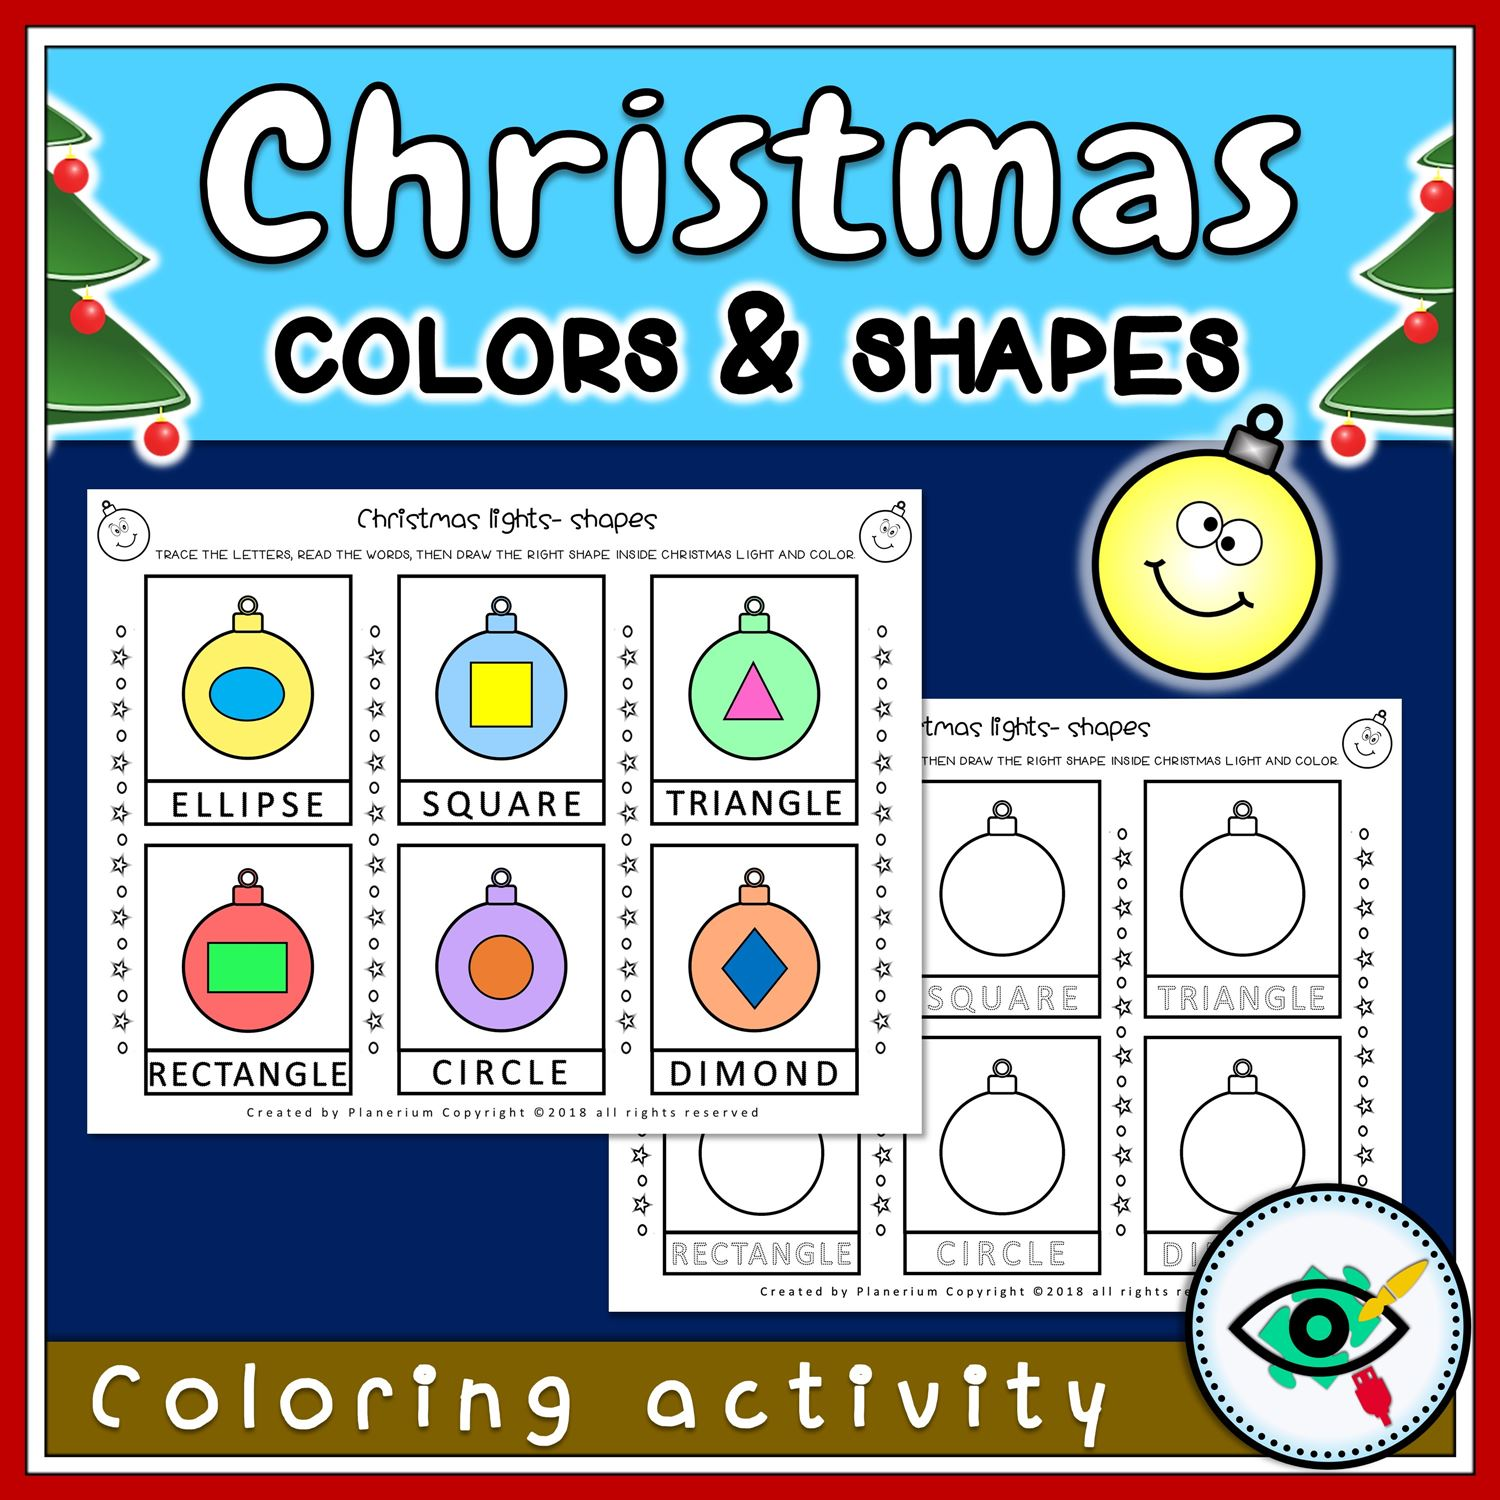 Christmas Coloring Activity - Shapes and Lights - Featured 1 | Planerium